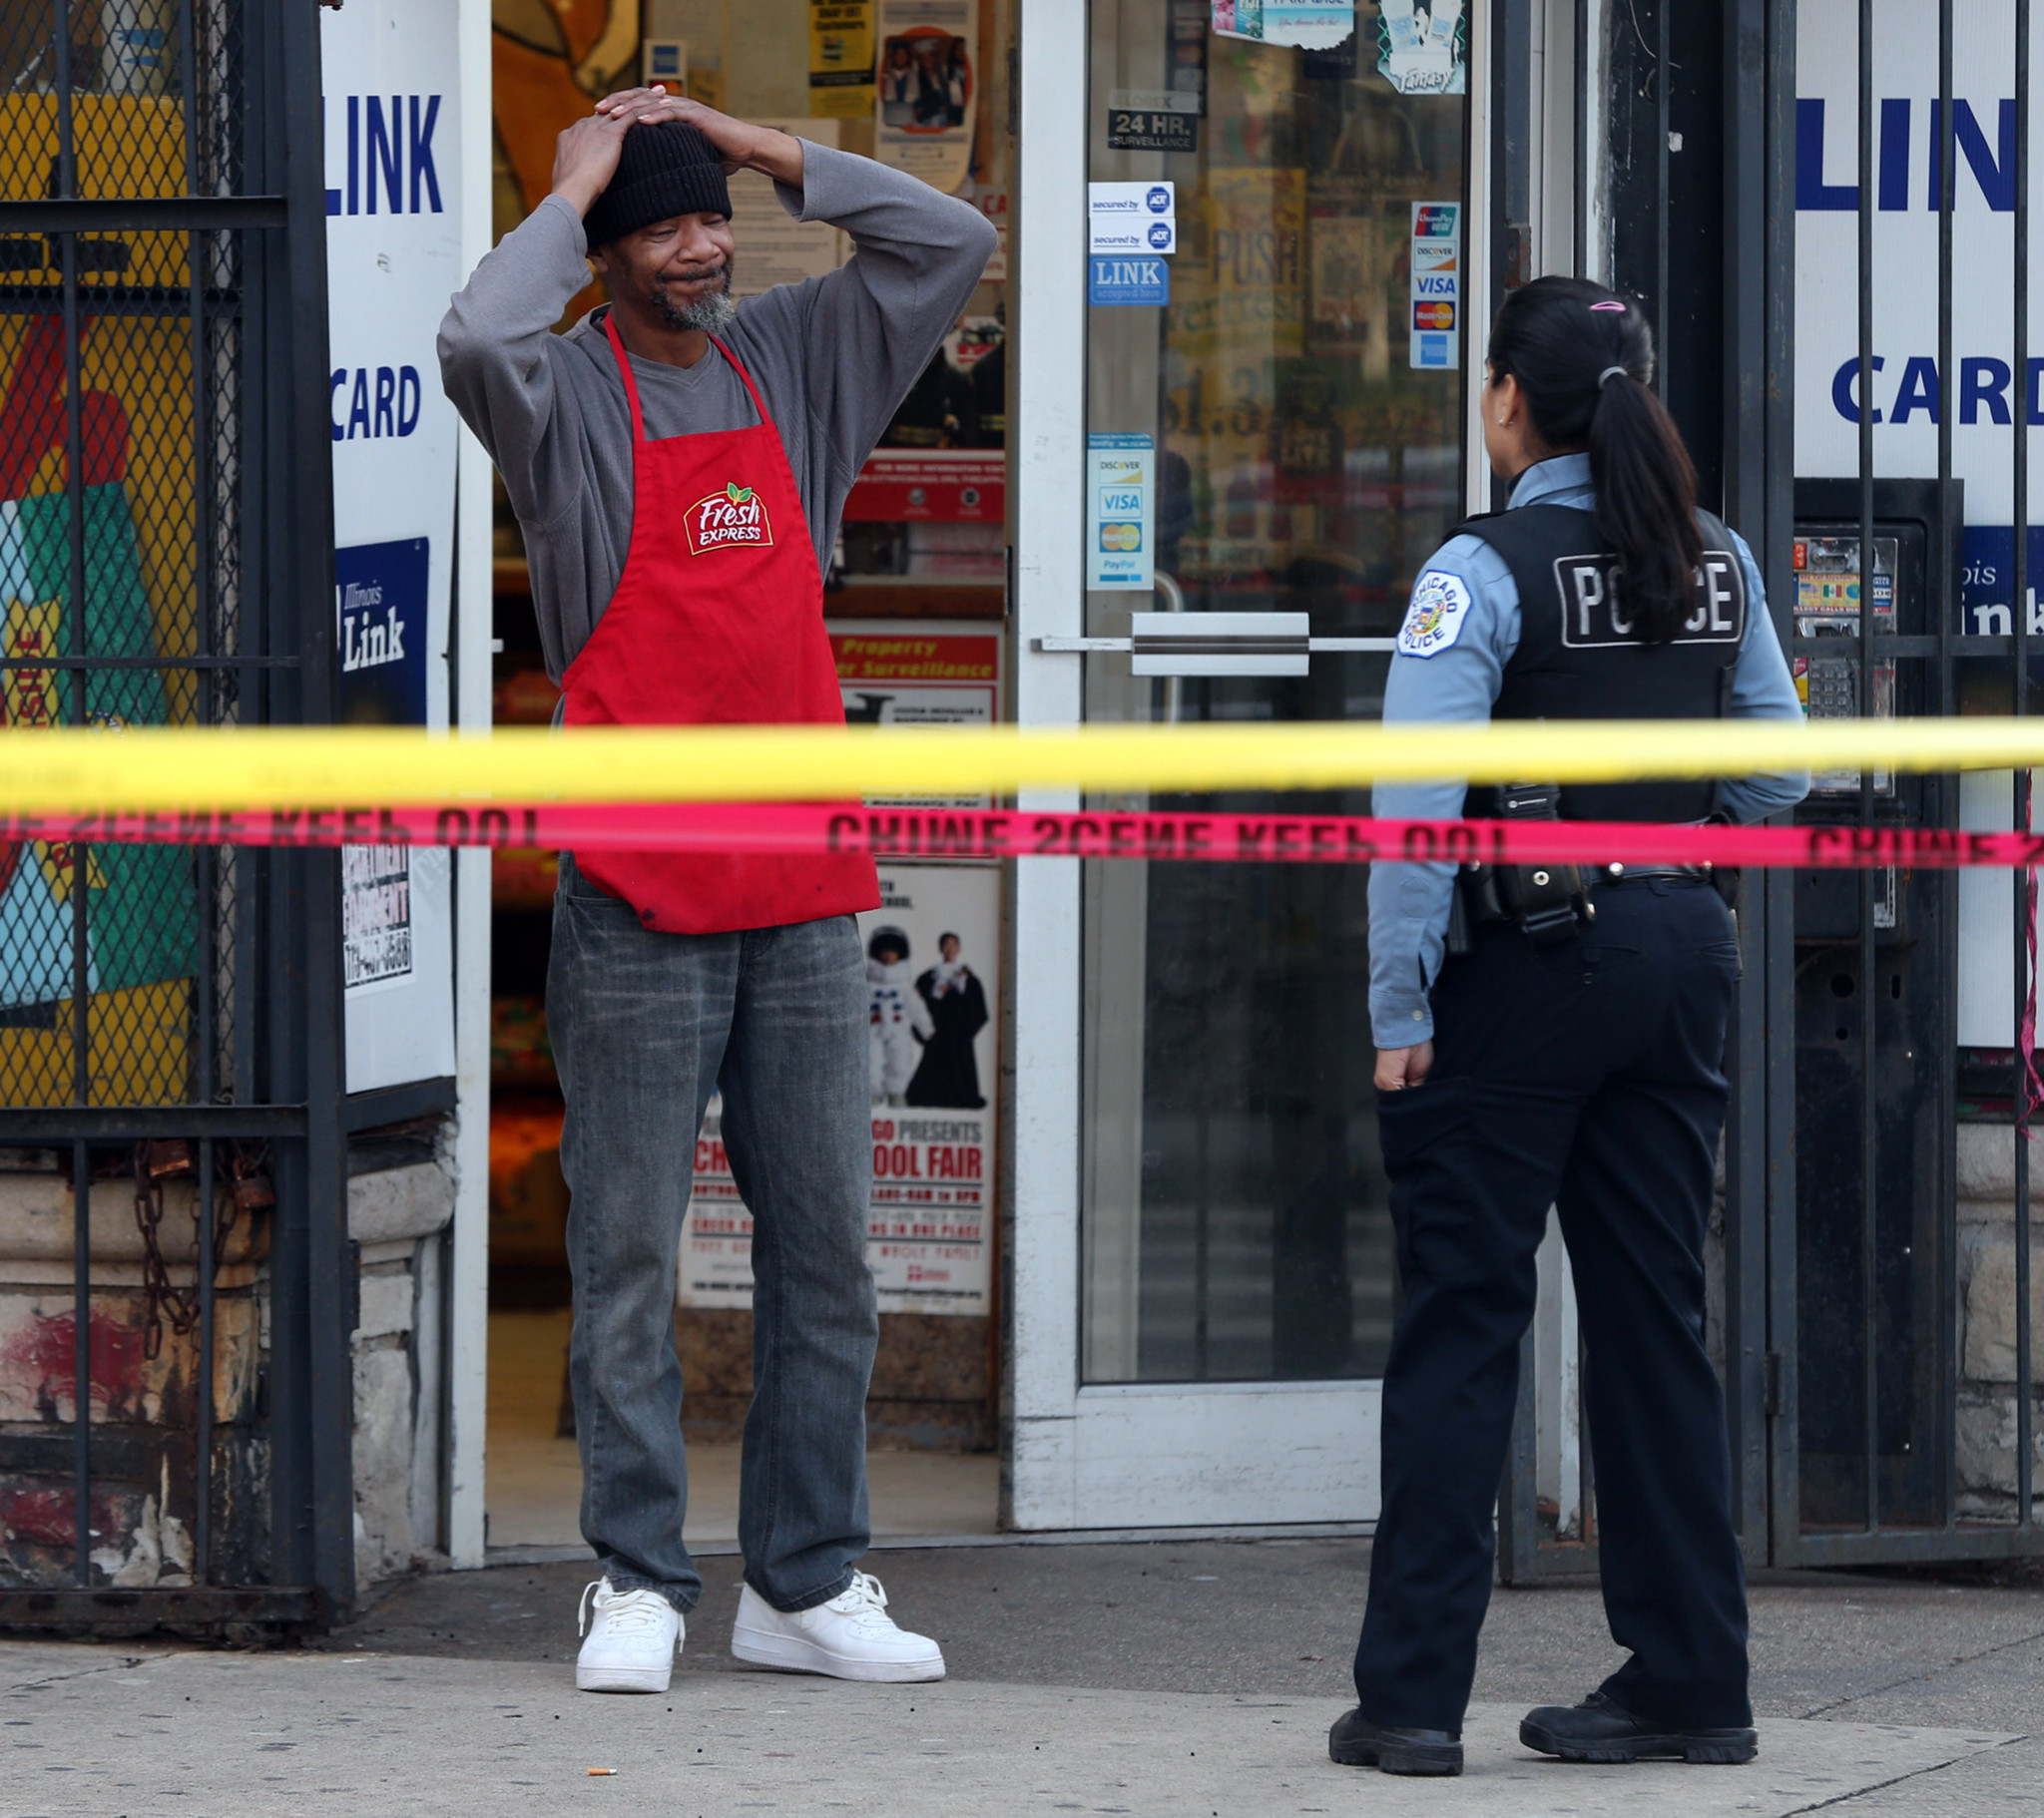 4 dead, 11 wounded in city shootings